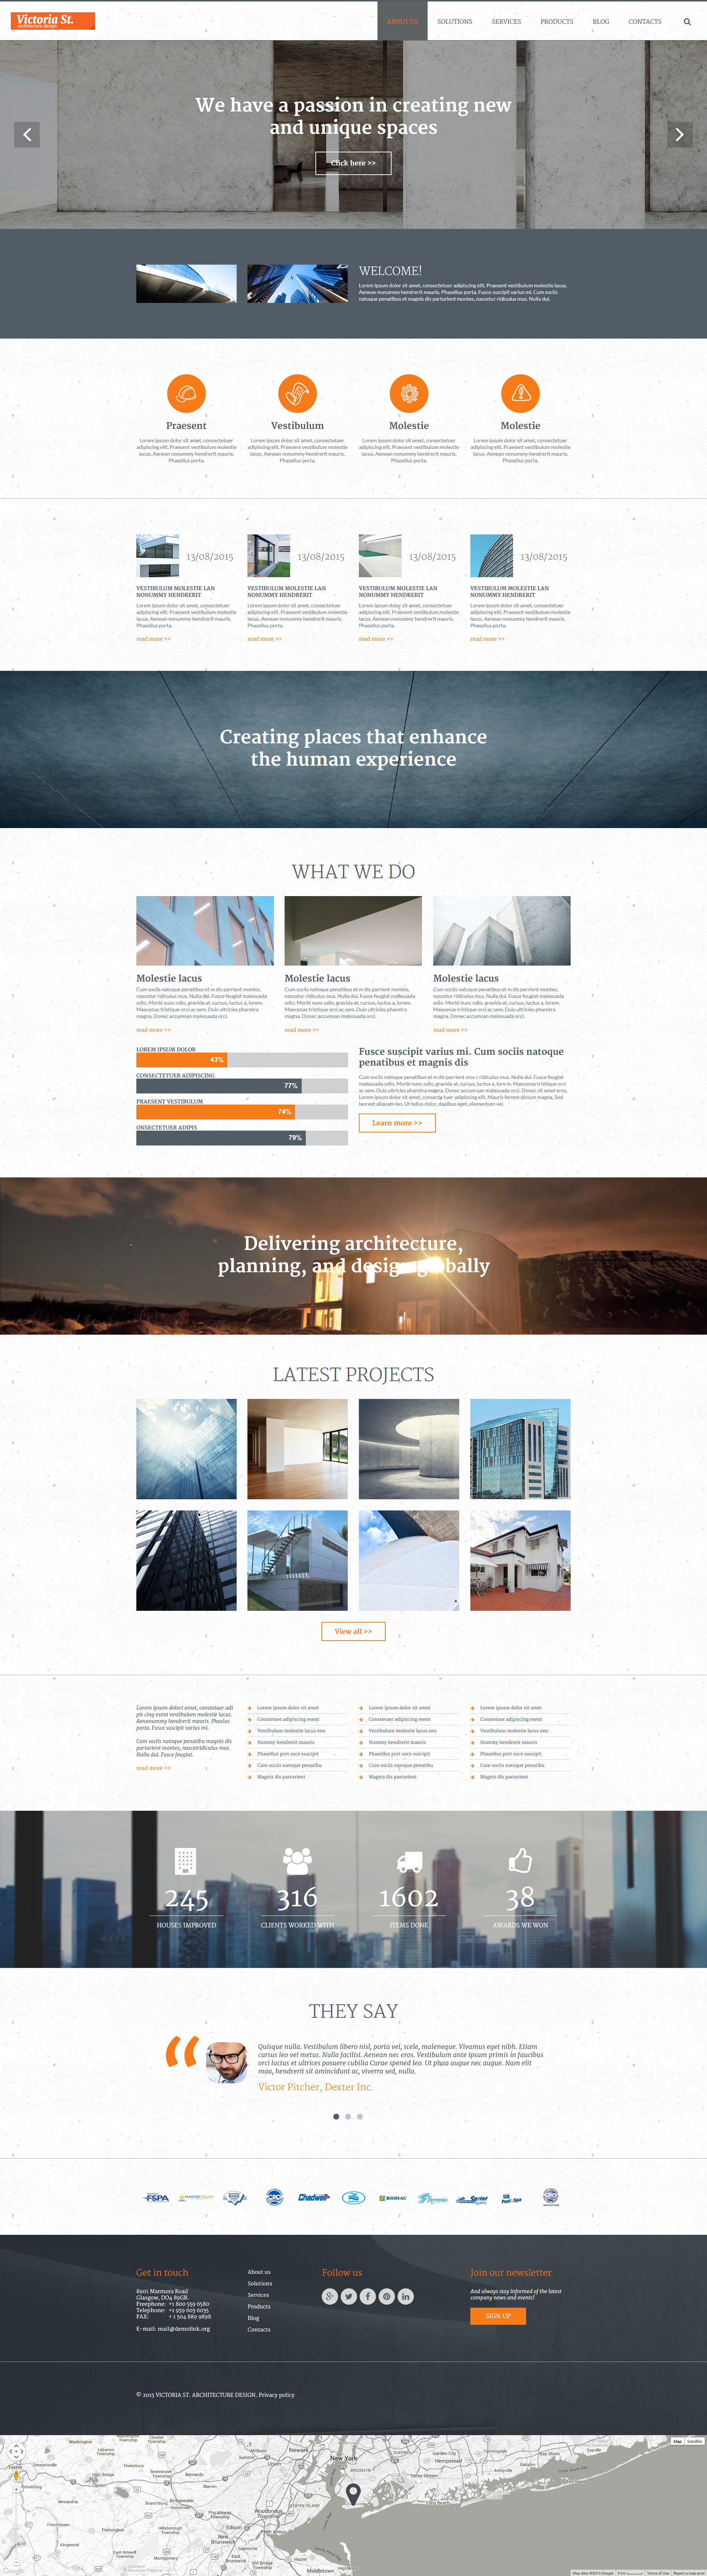 Architecture Design Template plain architecture design template responsive wordpress theme in decor